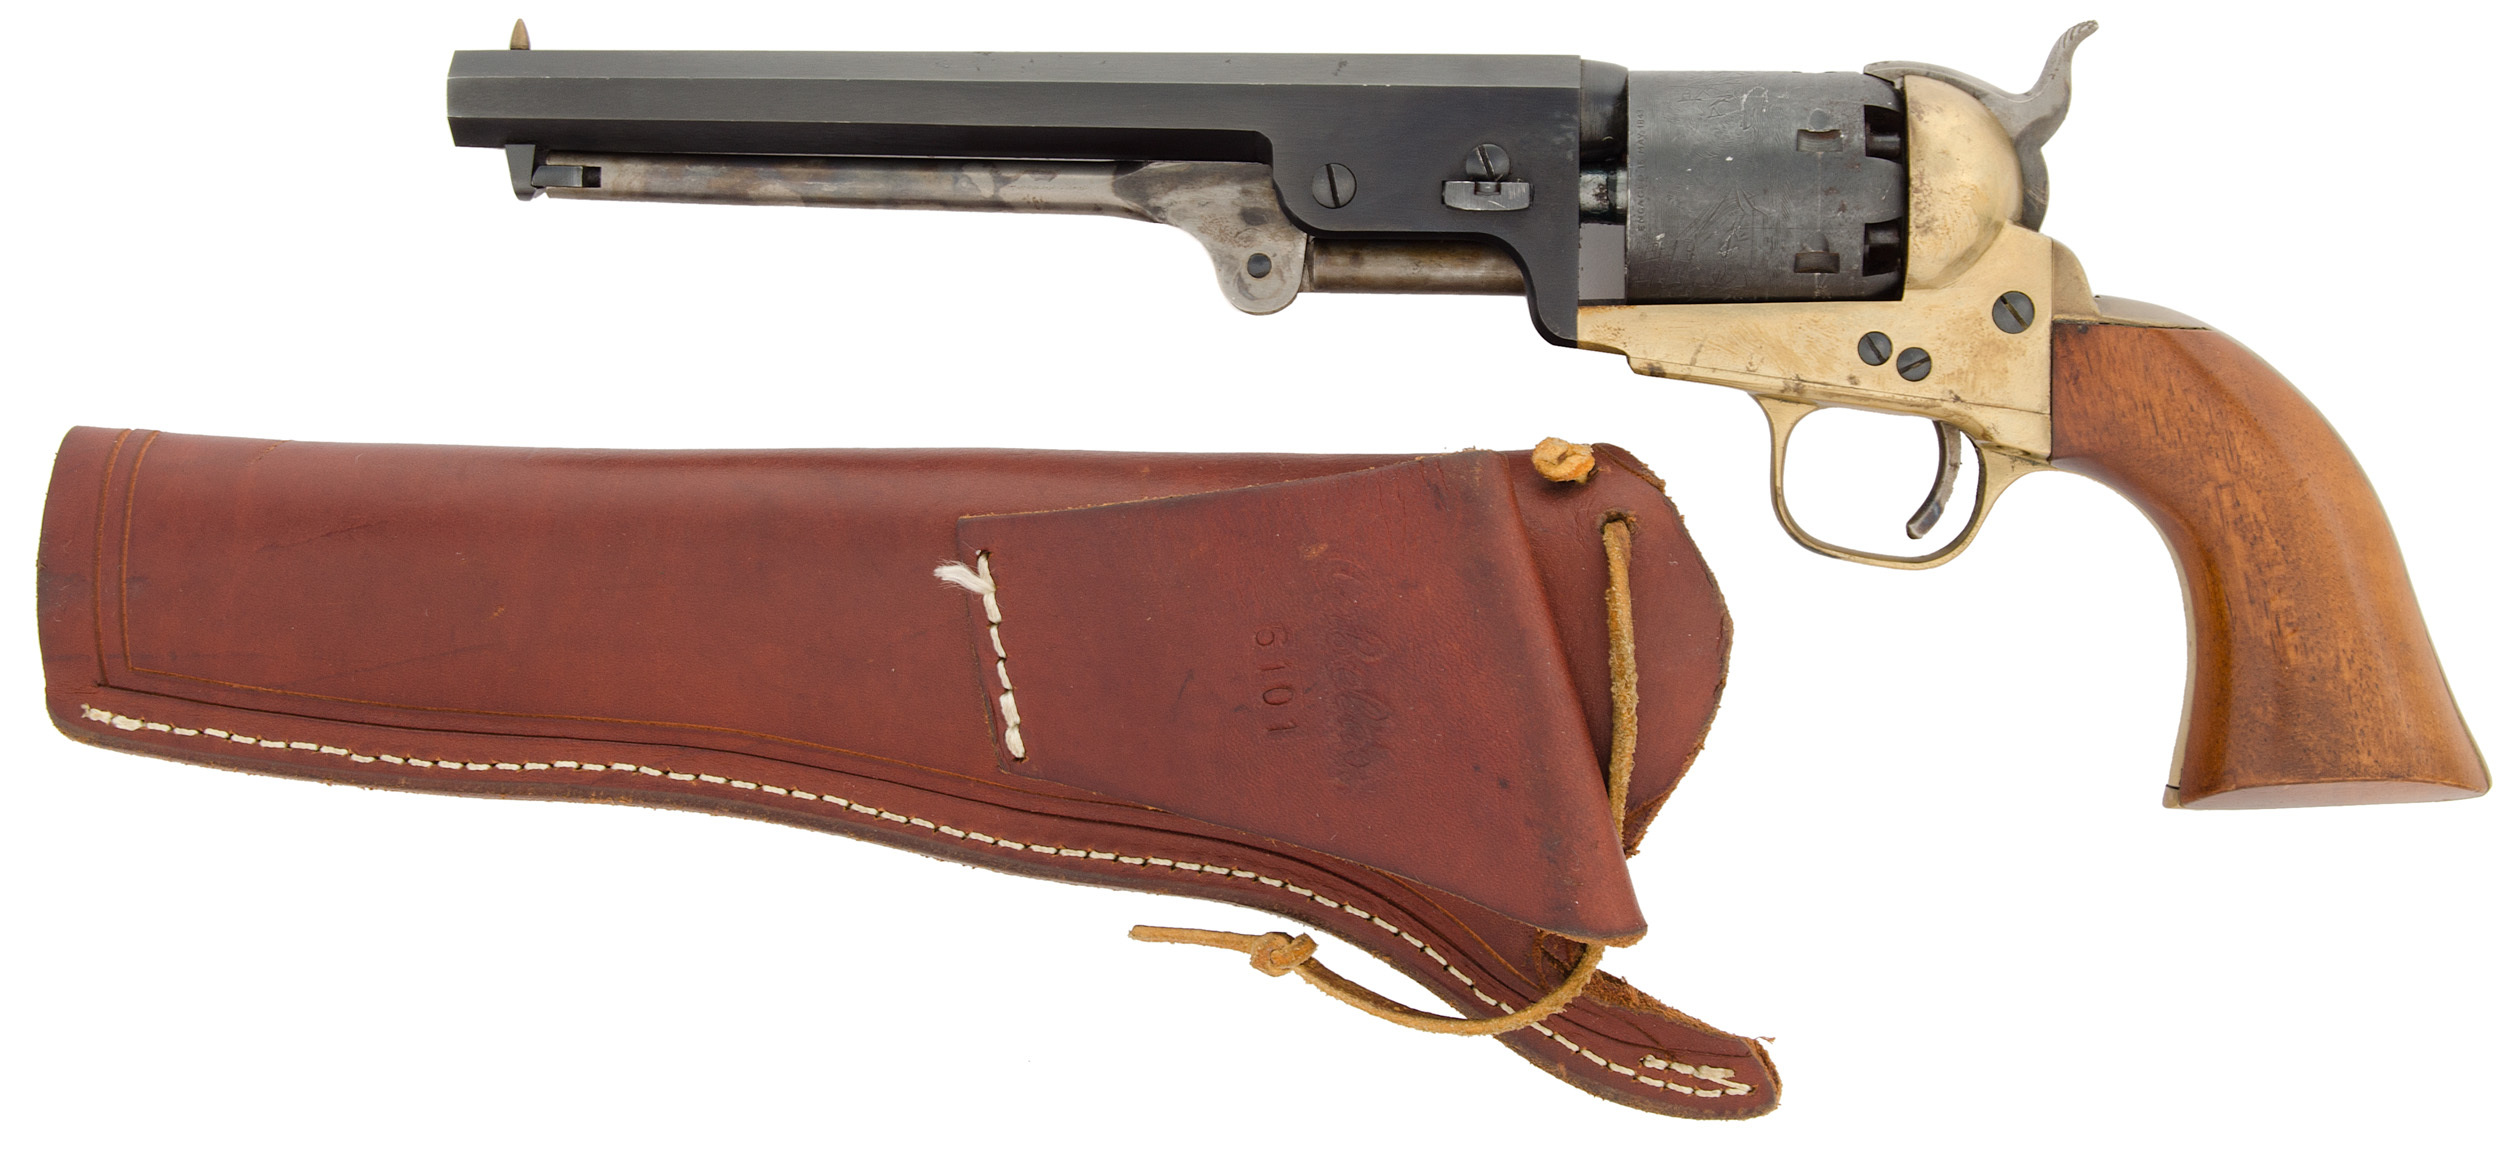 Reproduction Colt Model 1851 Navy Revolver by CVA | Cowan's